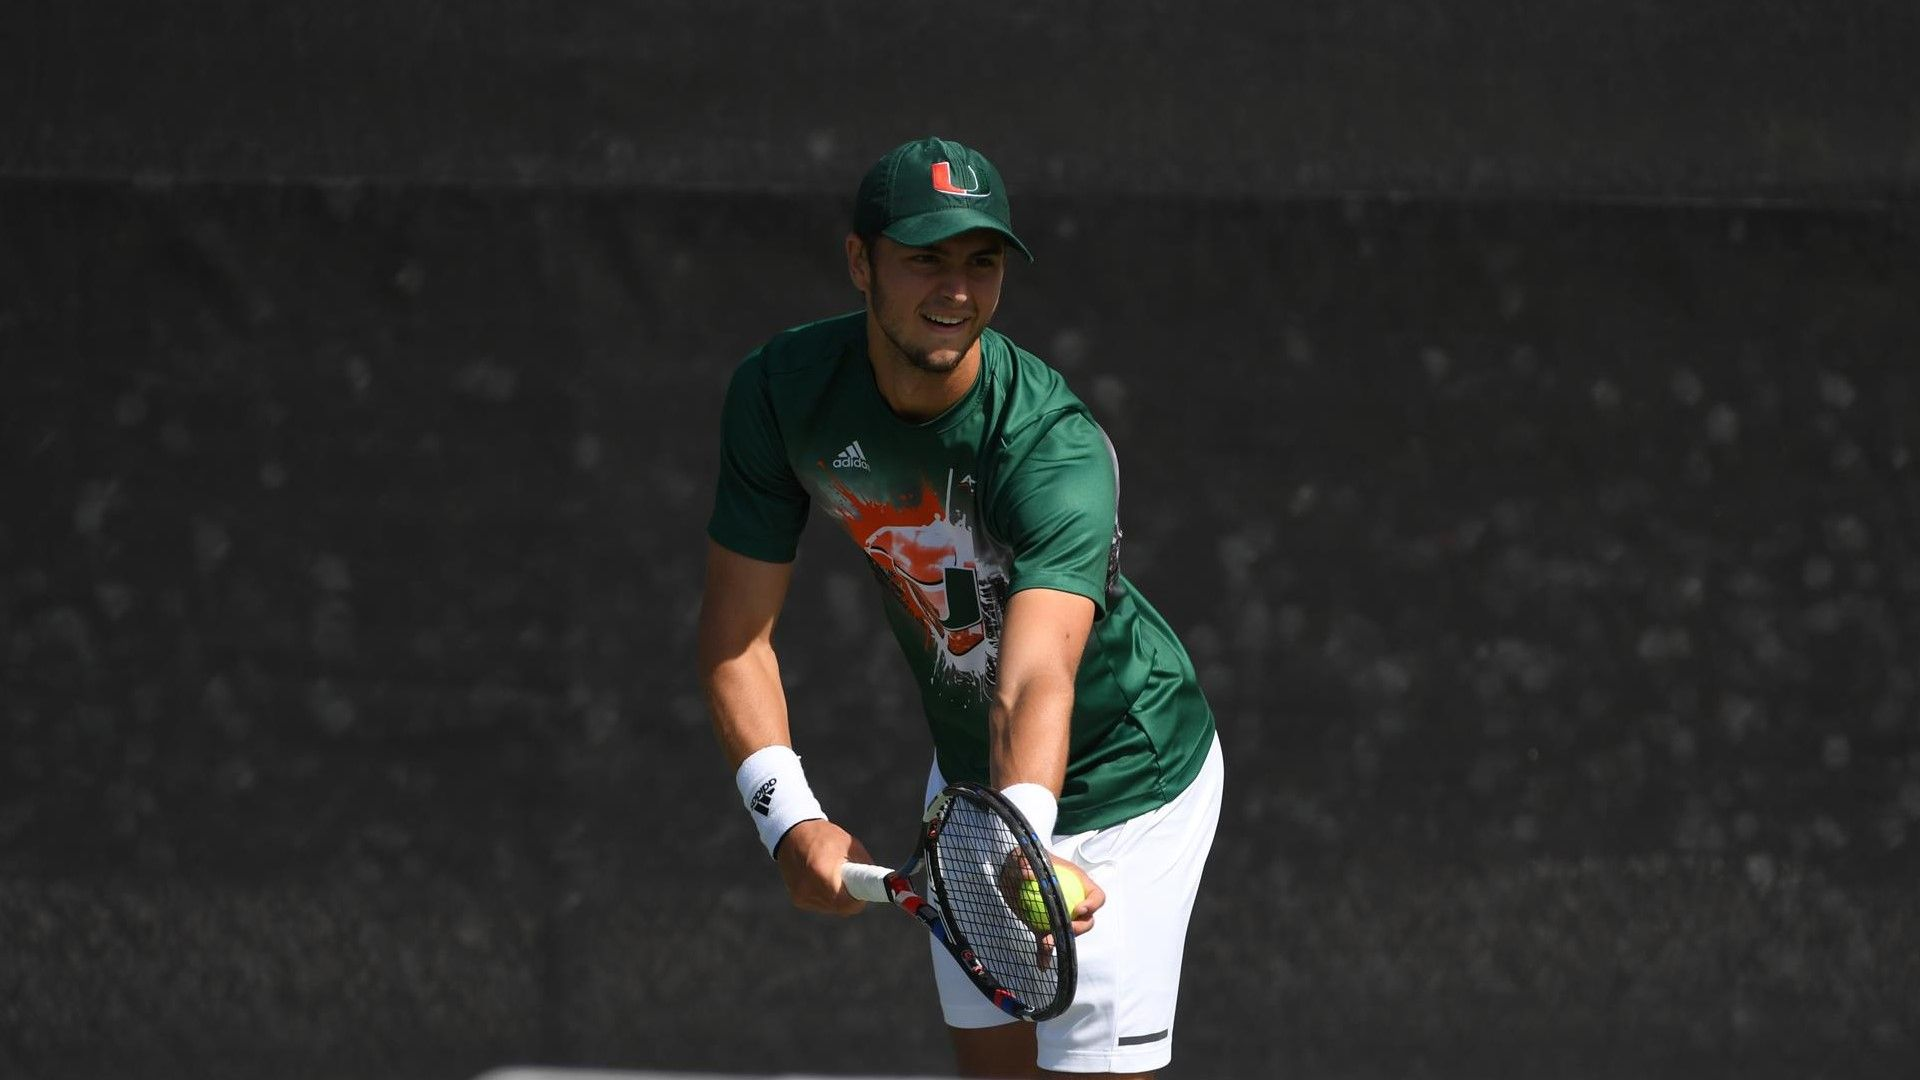 Hurricanes Wrap-up Day One in Tuscaloosa